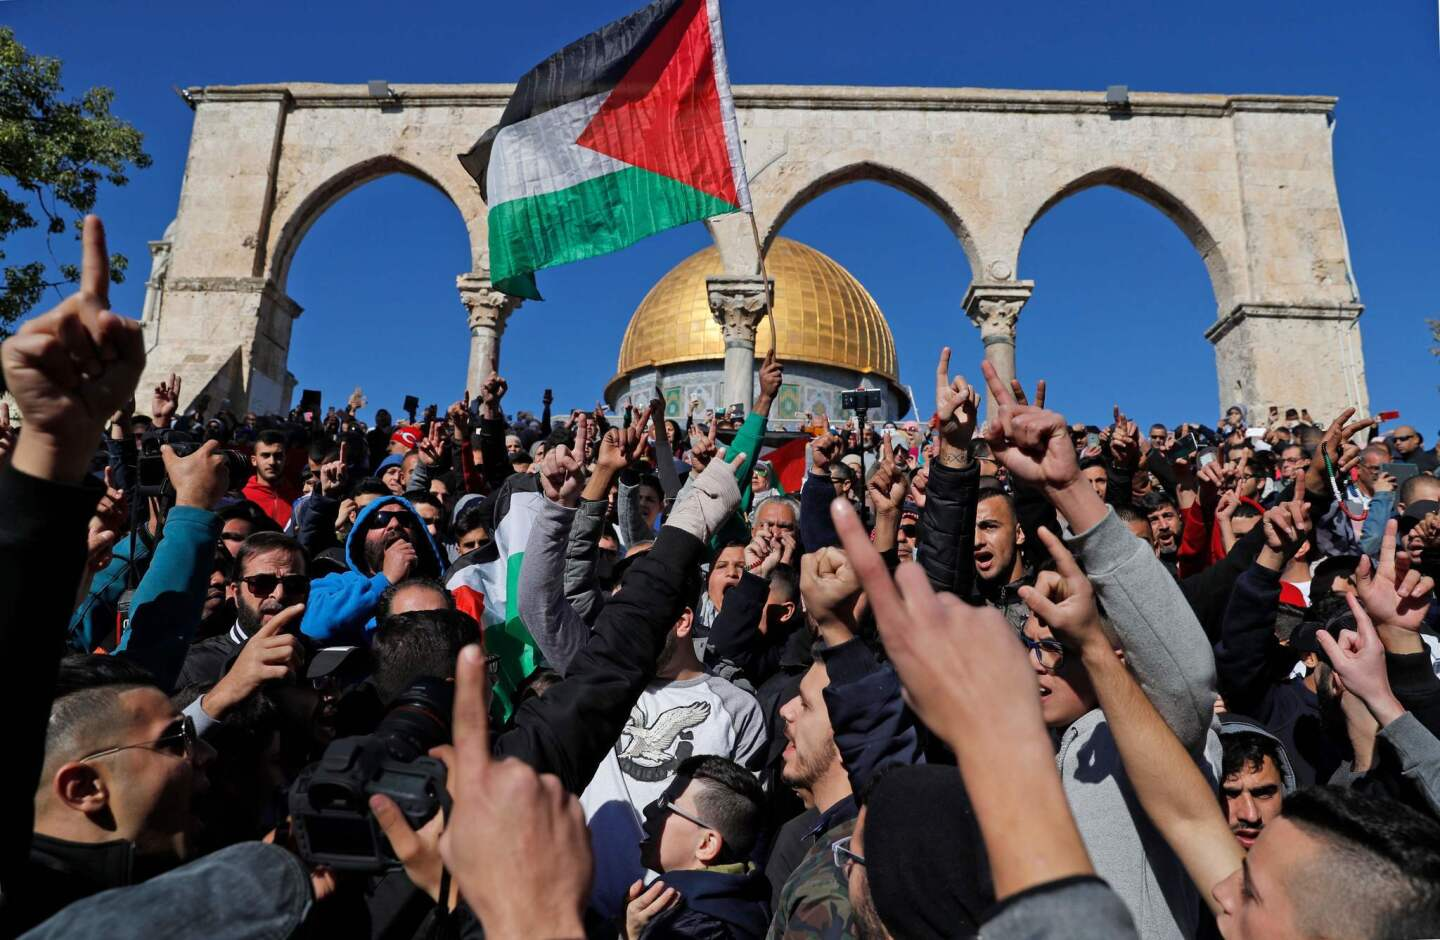 Palestinian Muslim worshipers shout slogans during Friday prayers in front of the Dome of the Rock mosque in Jerusalem's Old City. Israel deployed hundreds of additional police officers following Palestinian calls for protests after U.S. President Trump's recognition of Jerusalem as Israel's capital.